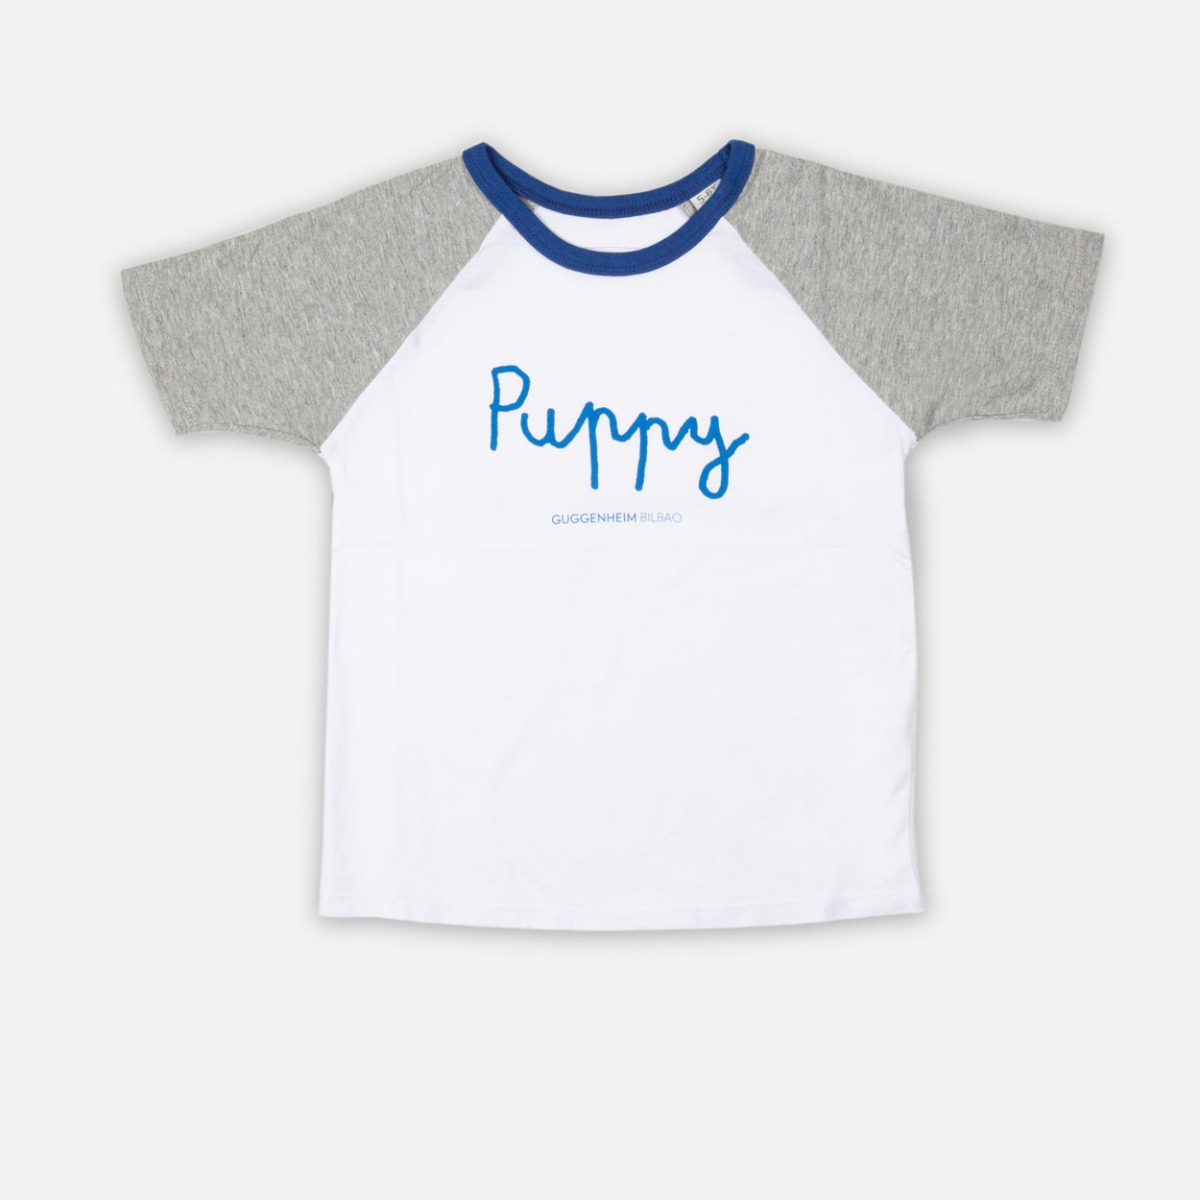 PUPPY CHILDREN'S T-SHIRT